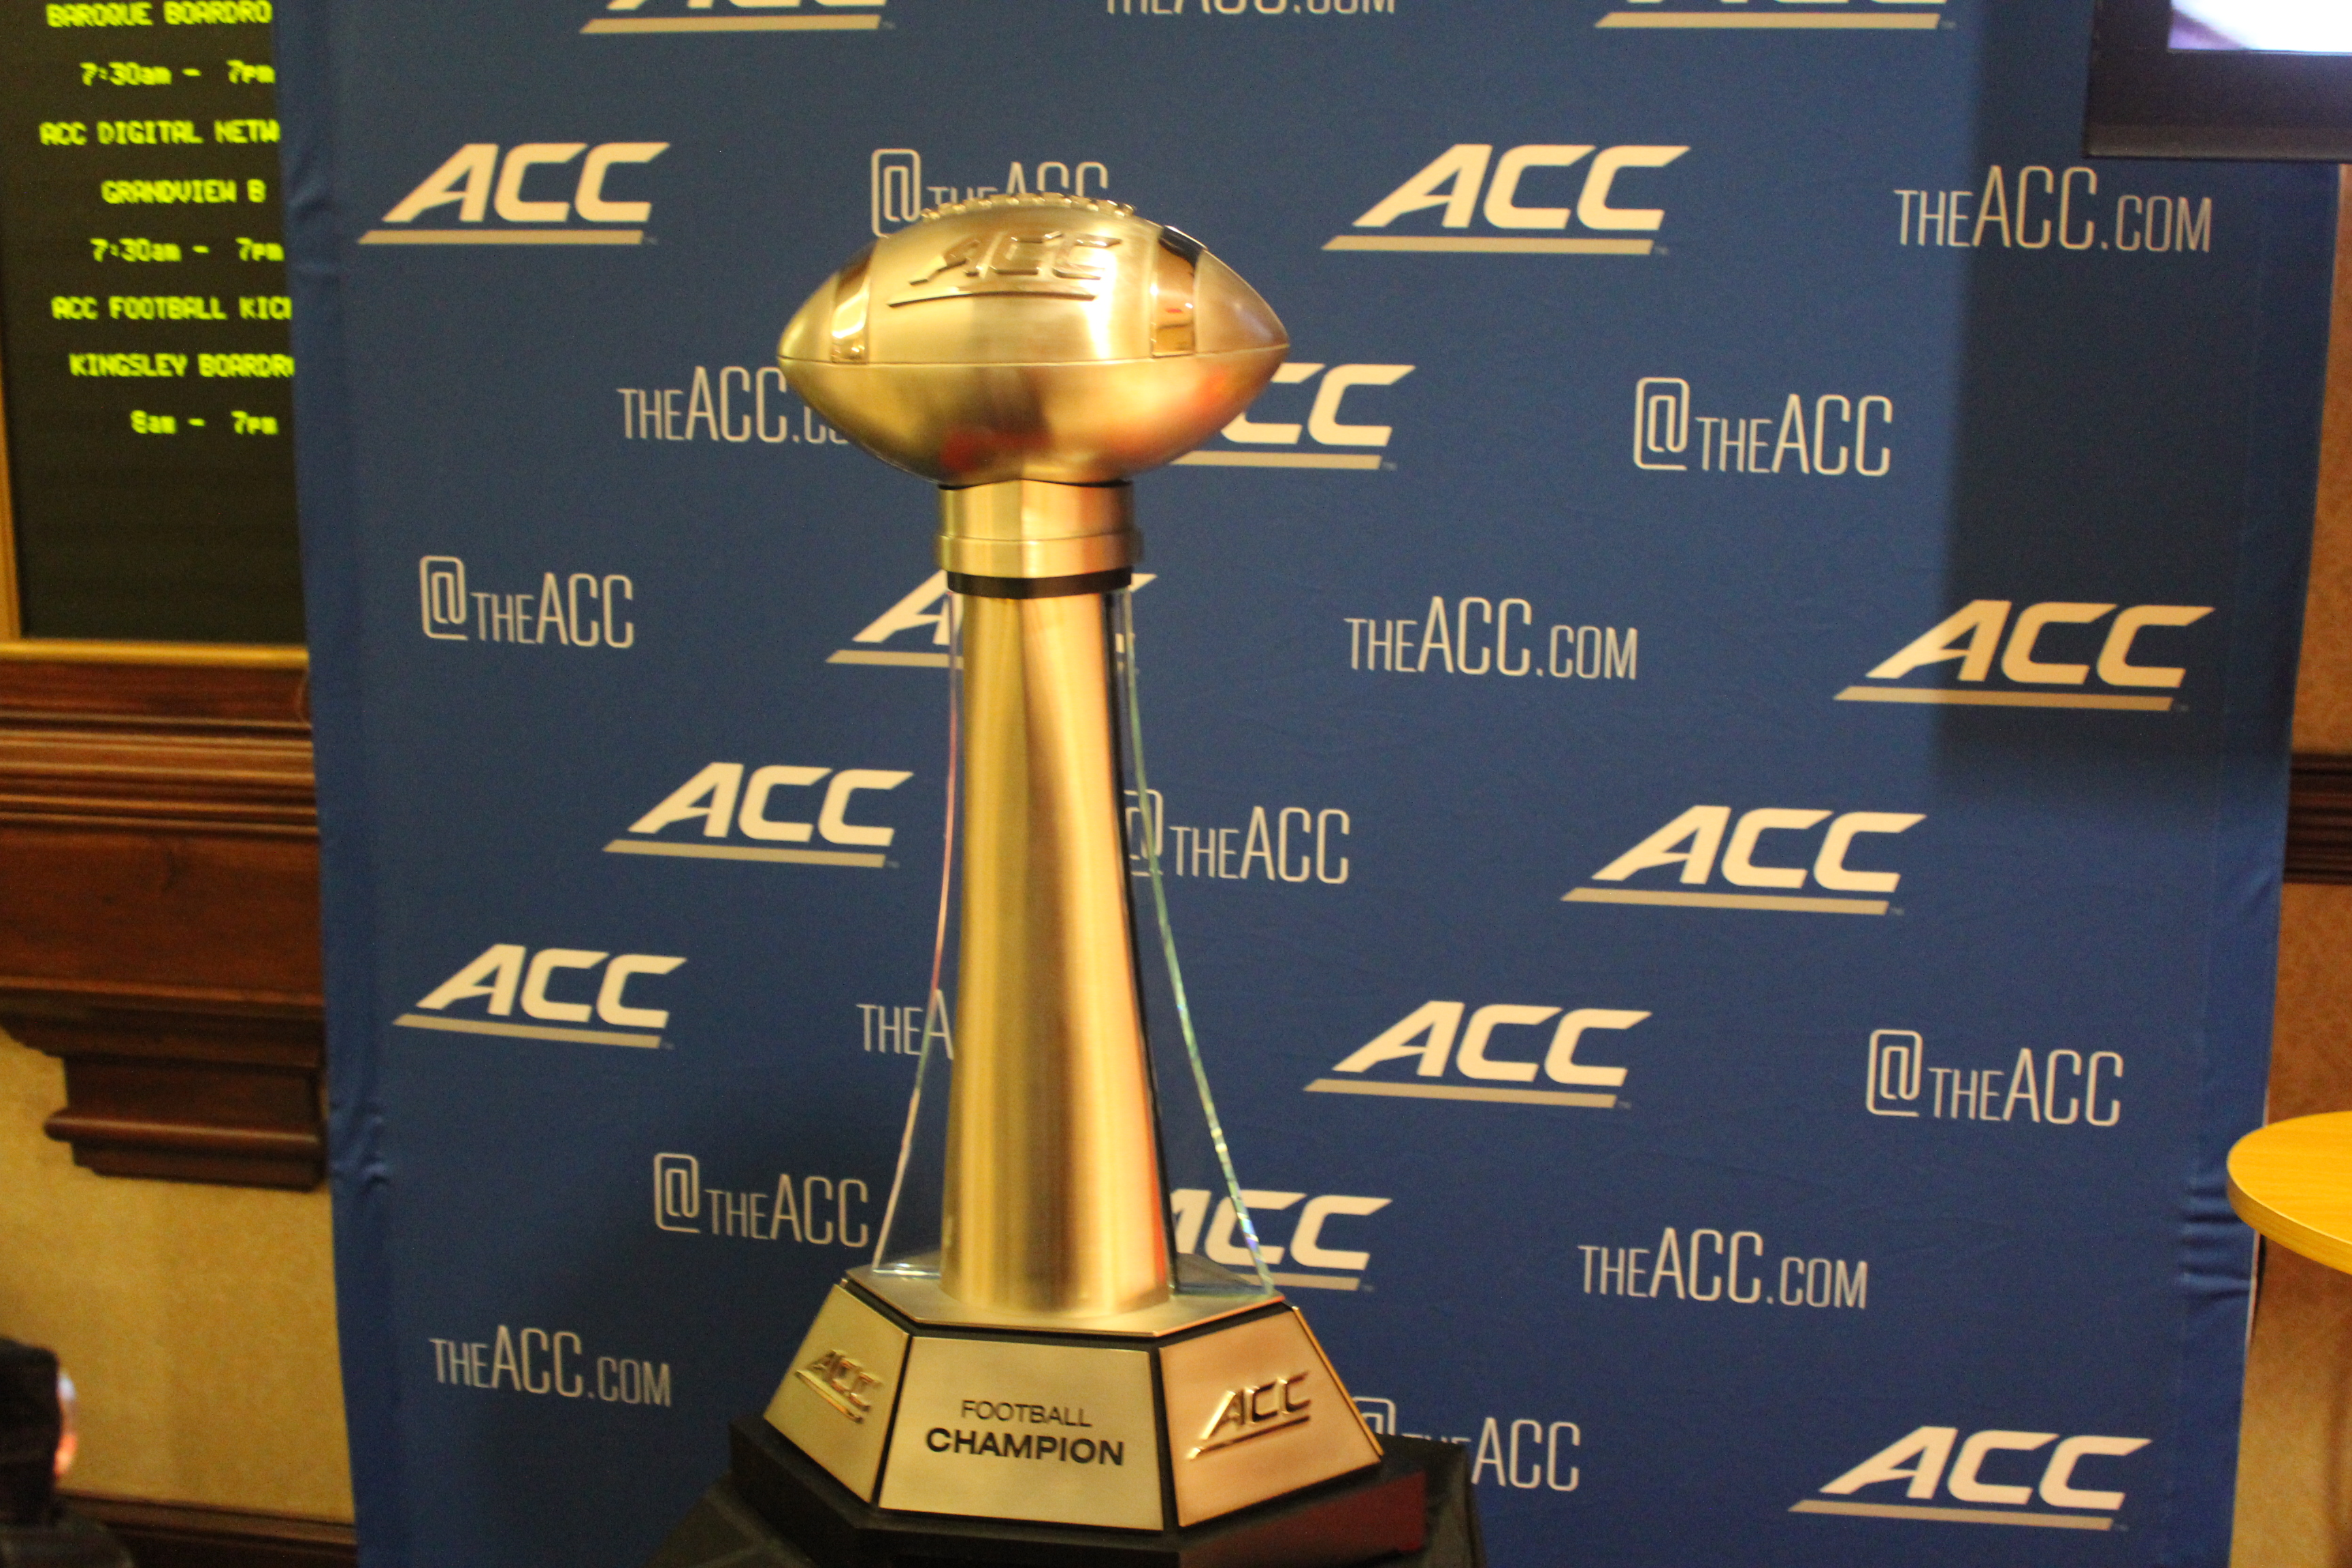 ACC Championship Trophy 2014 ACC Kickoff Photo by Mark Blankenbaker